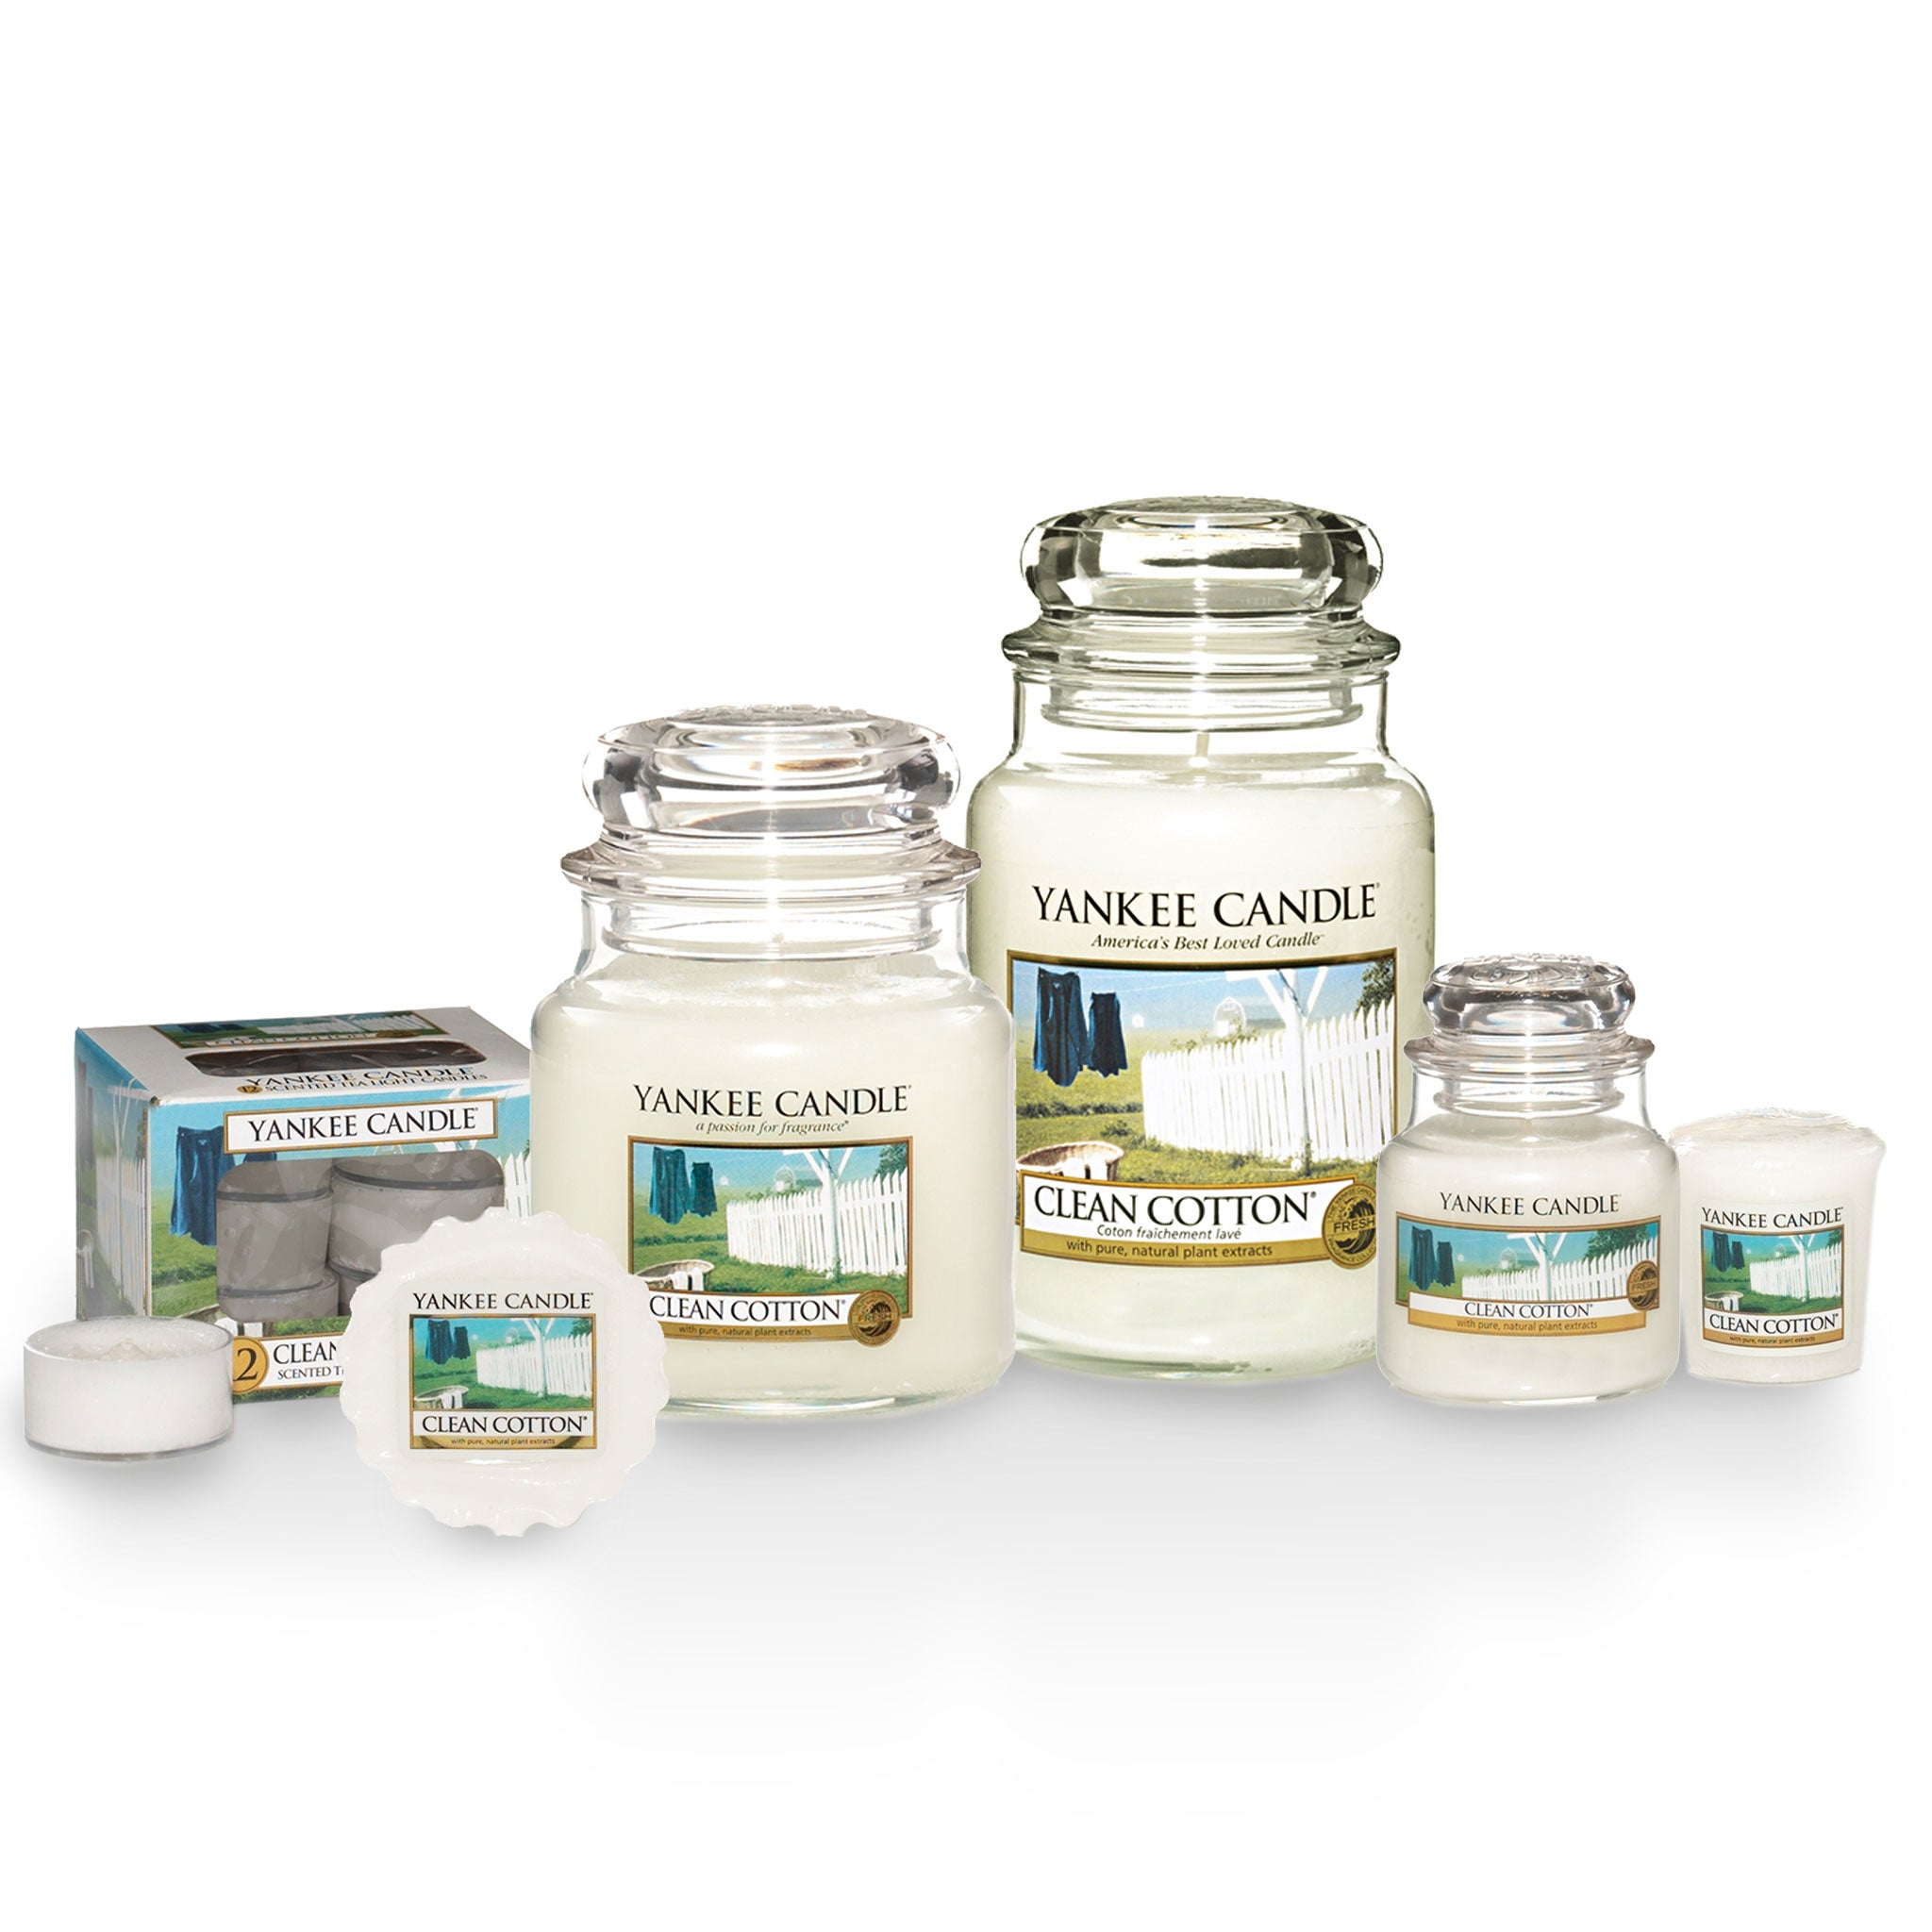 CLEAN COTTON -Yankee Candle- Giara Piccola